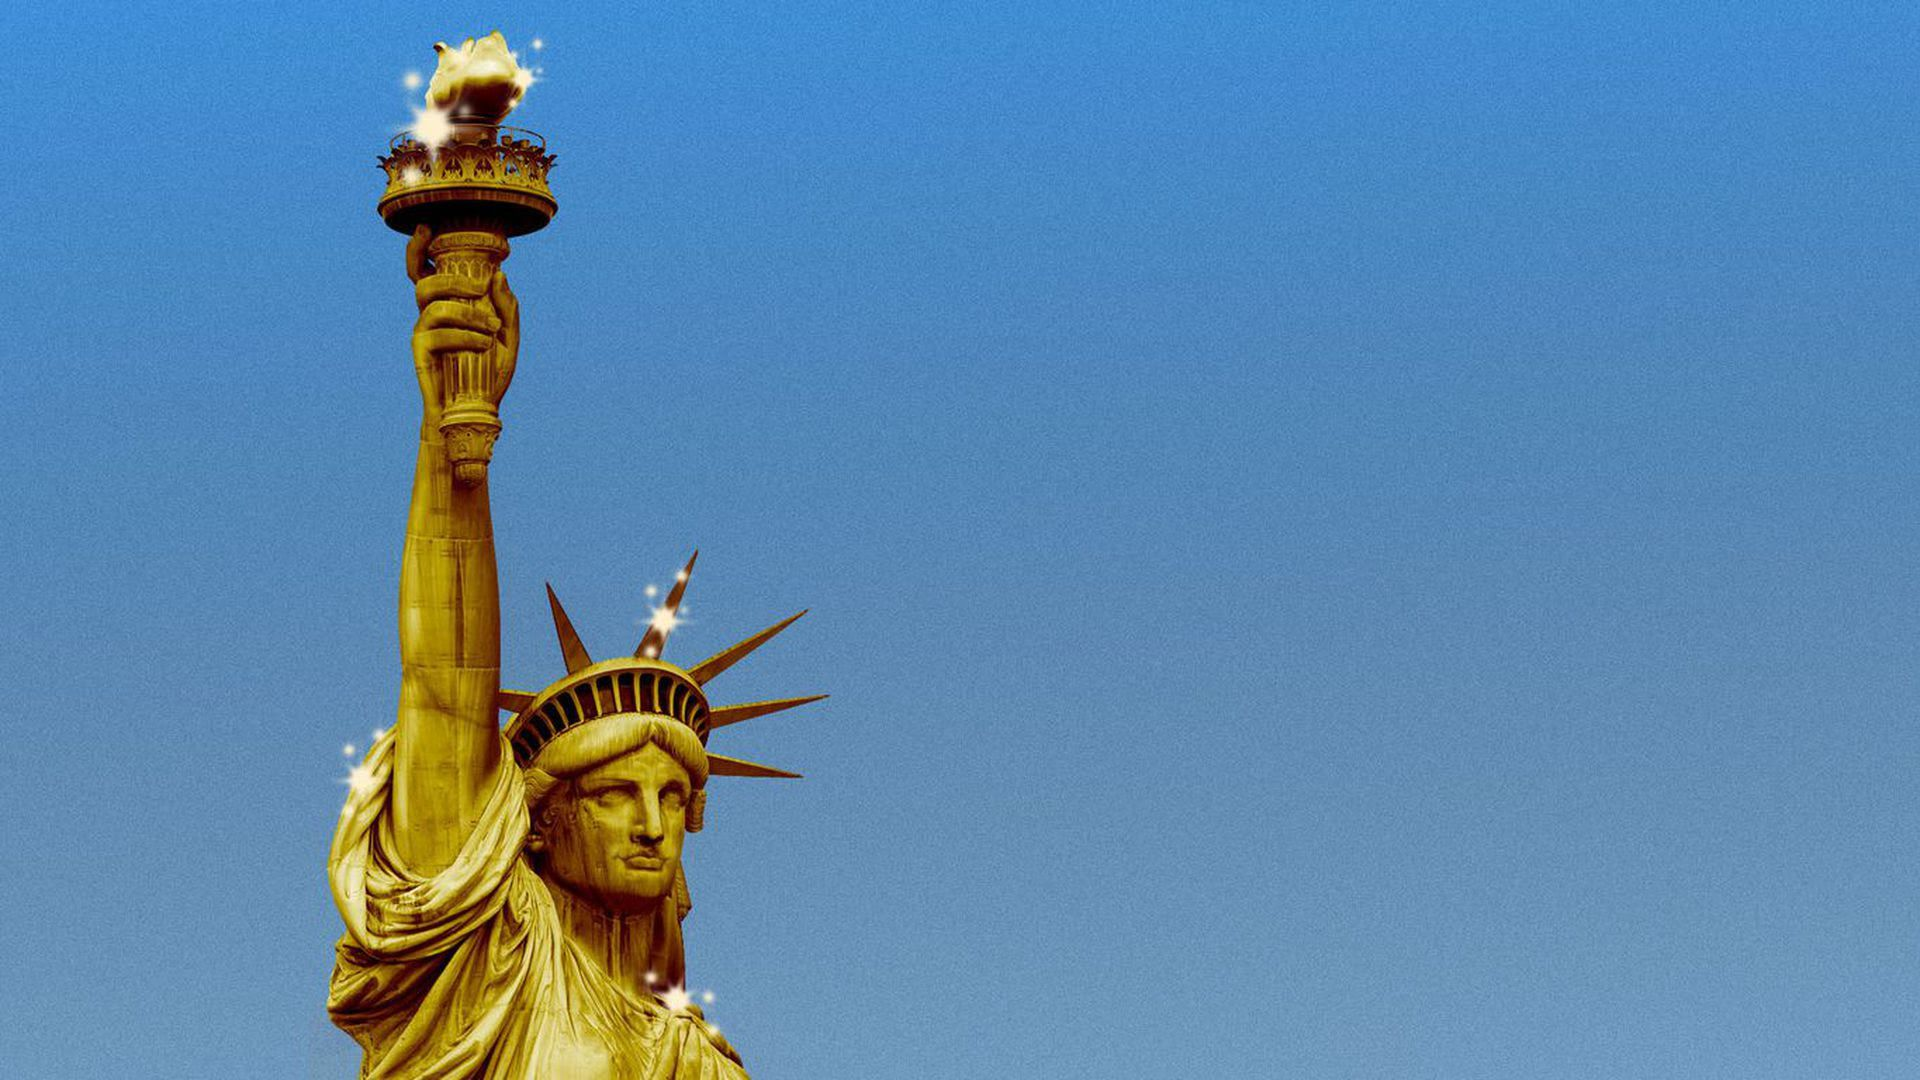 A gold version of the statue of liberty.